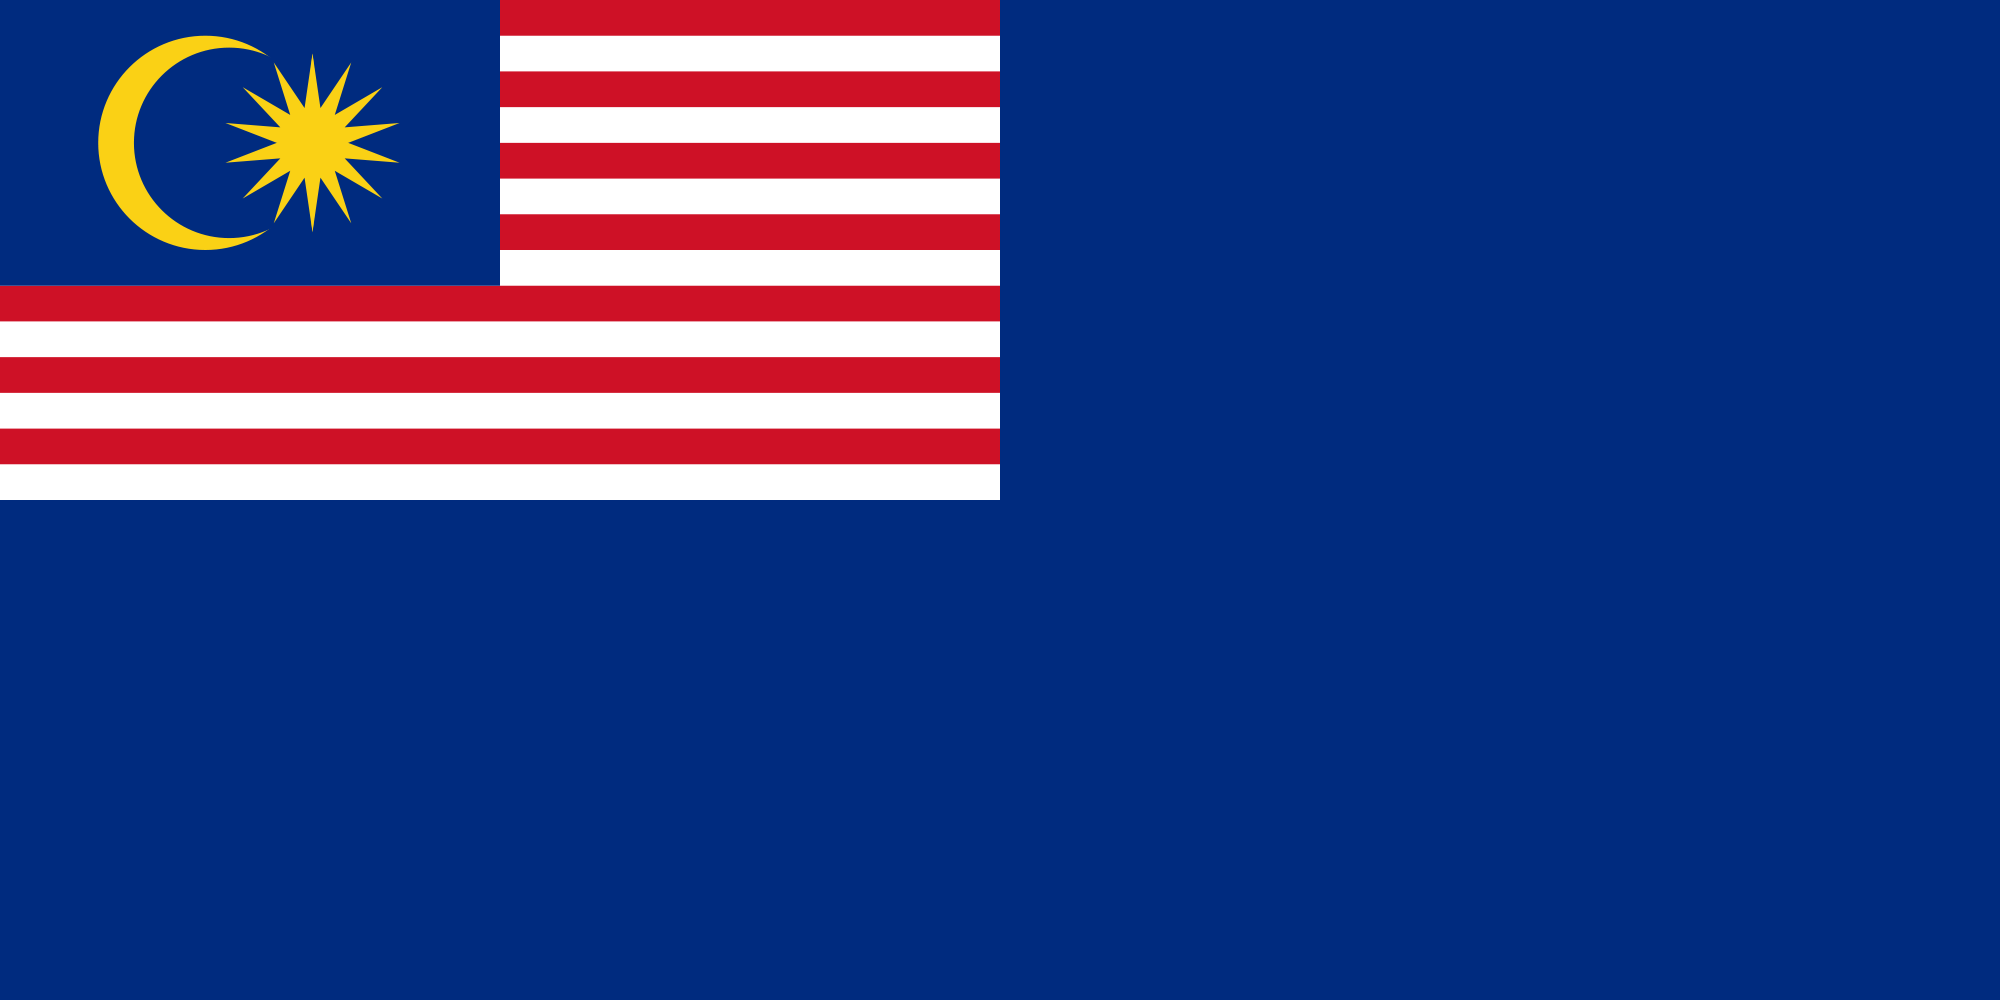 Malaysia (State ensign)